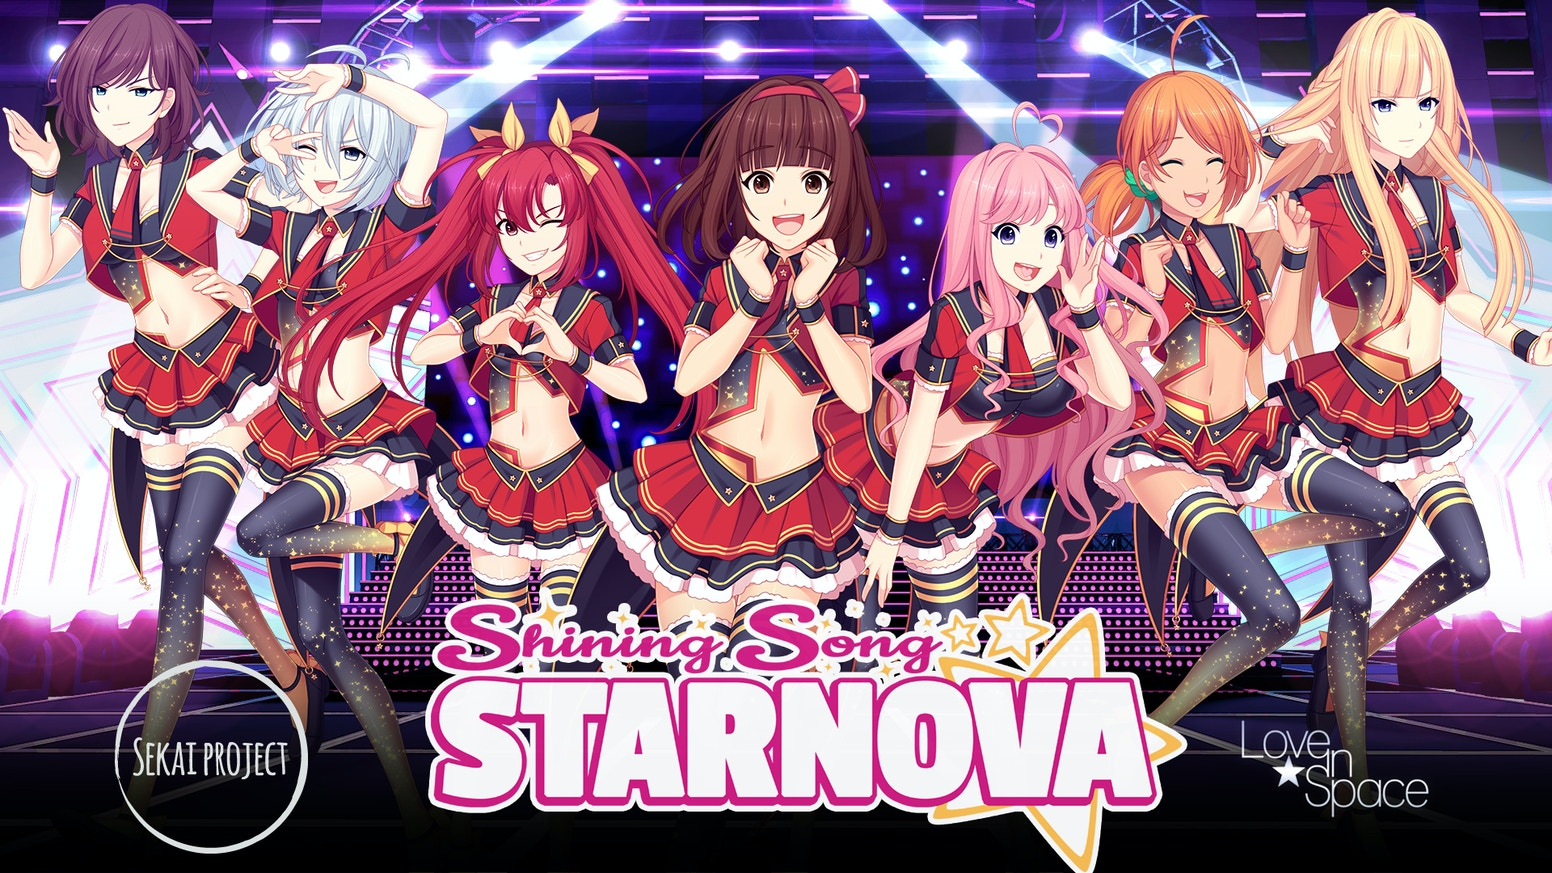 A shining and gripping visual novel all about the idol industry - from the creators of the Sunrider series!